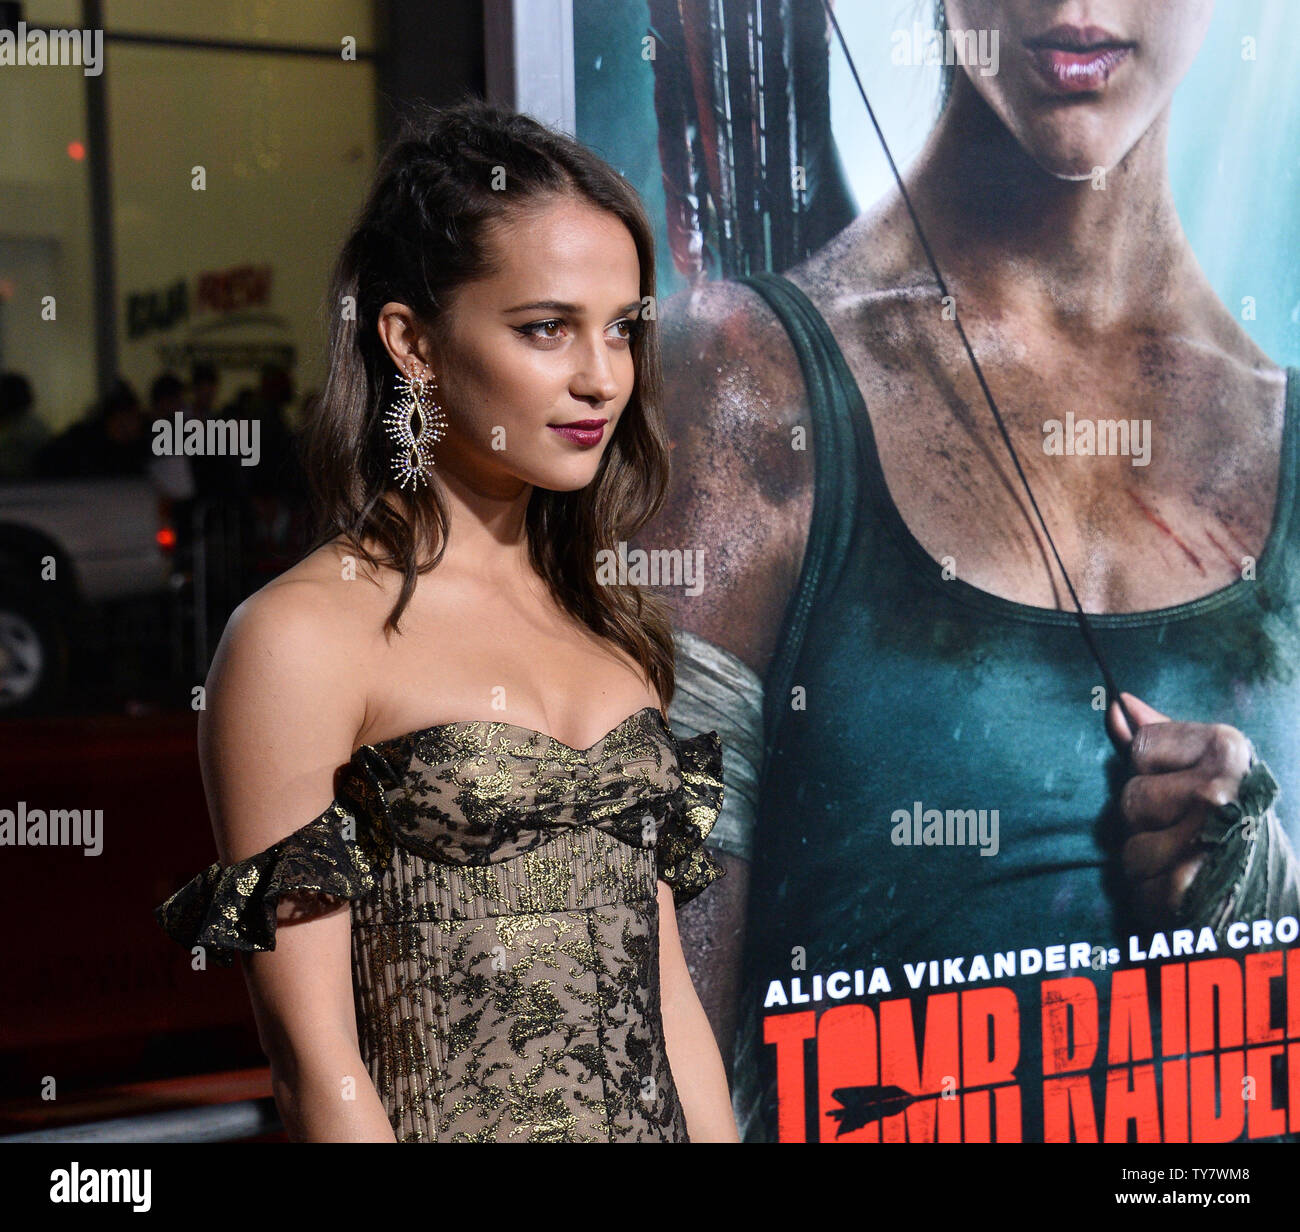 Cast Member Alicia Vikander Attends The Premiere Of The Motion